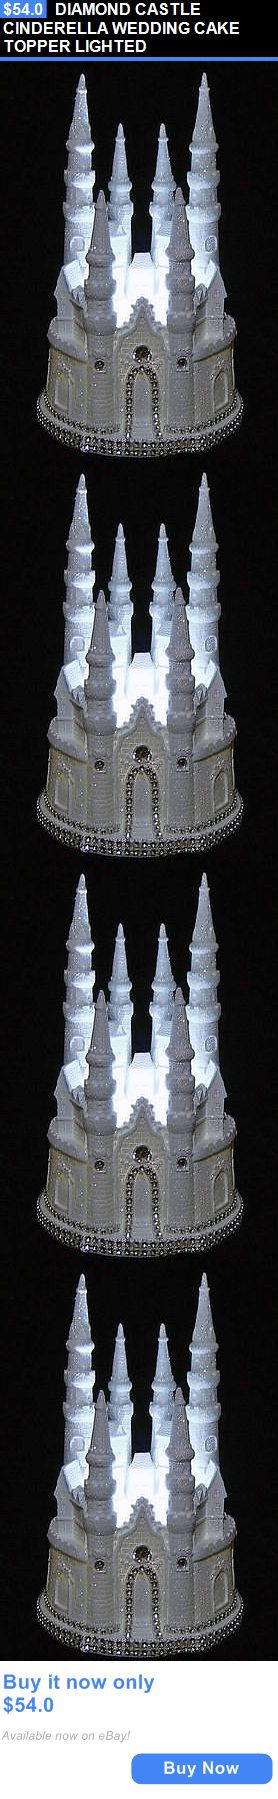 Wedding Cakes Toppers: Diamond Castle Cinderella Wedding Cake Topper Lighted BUY IT NOW ONLY: $54.0